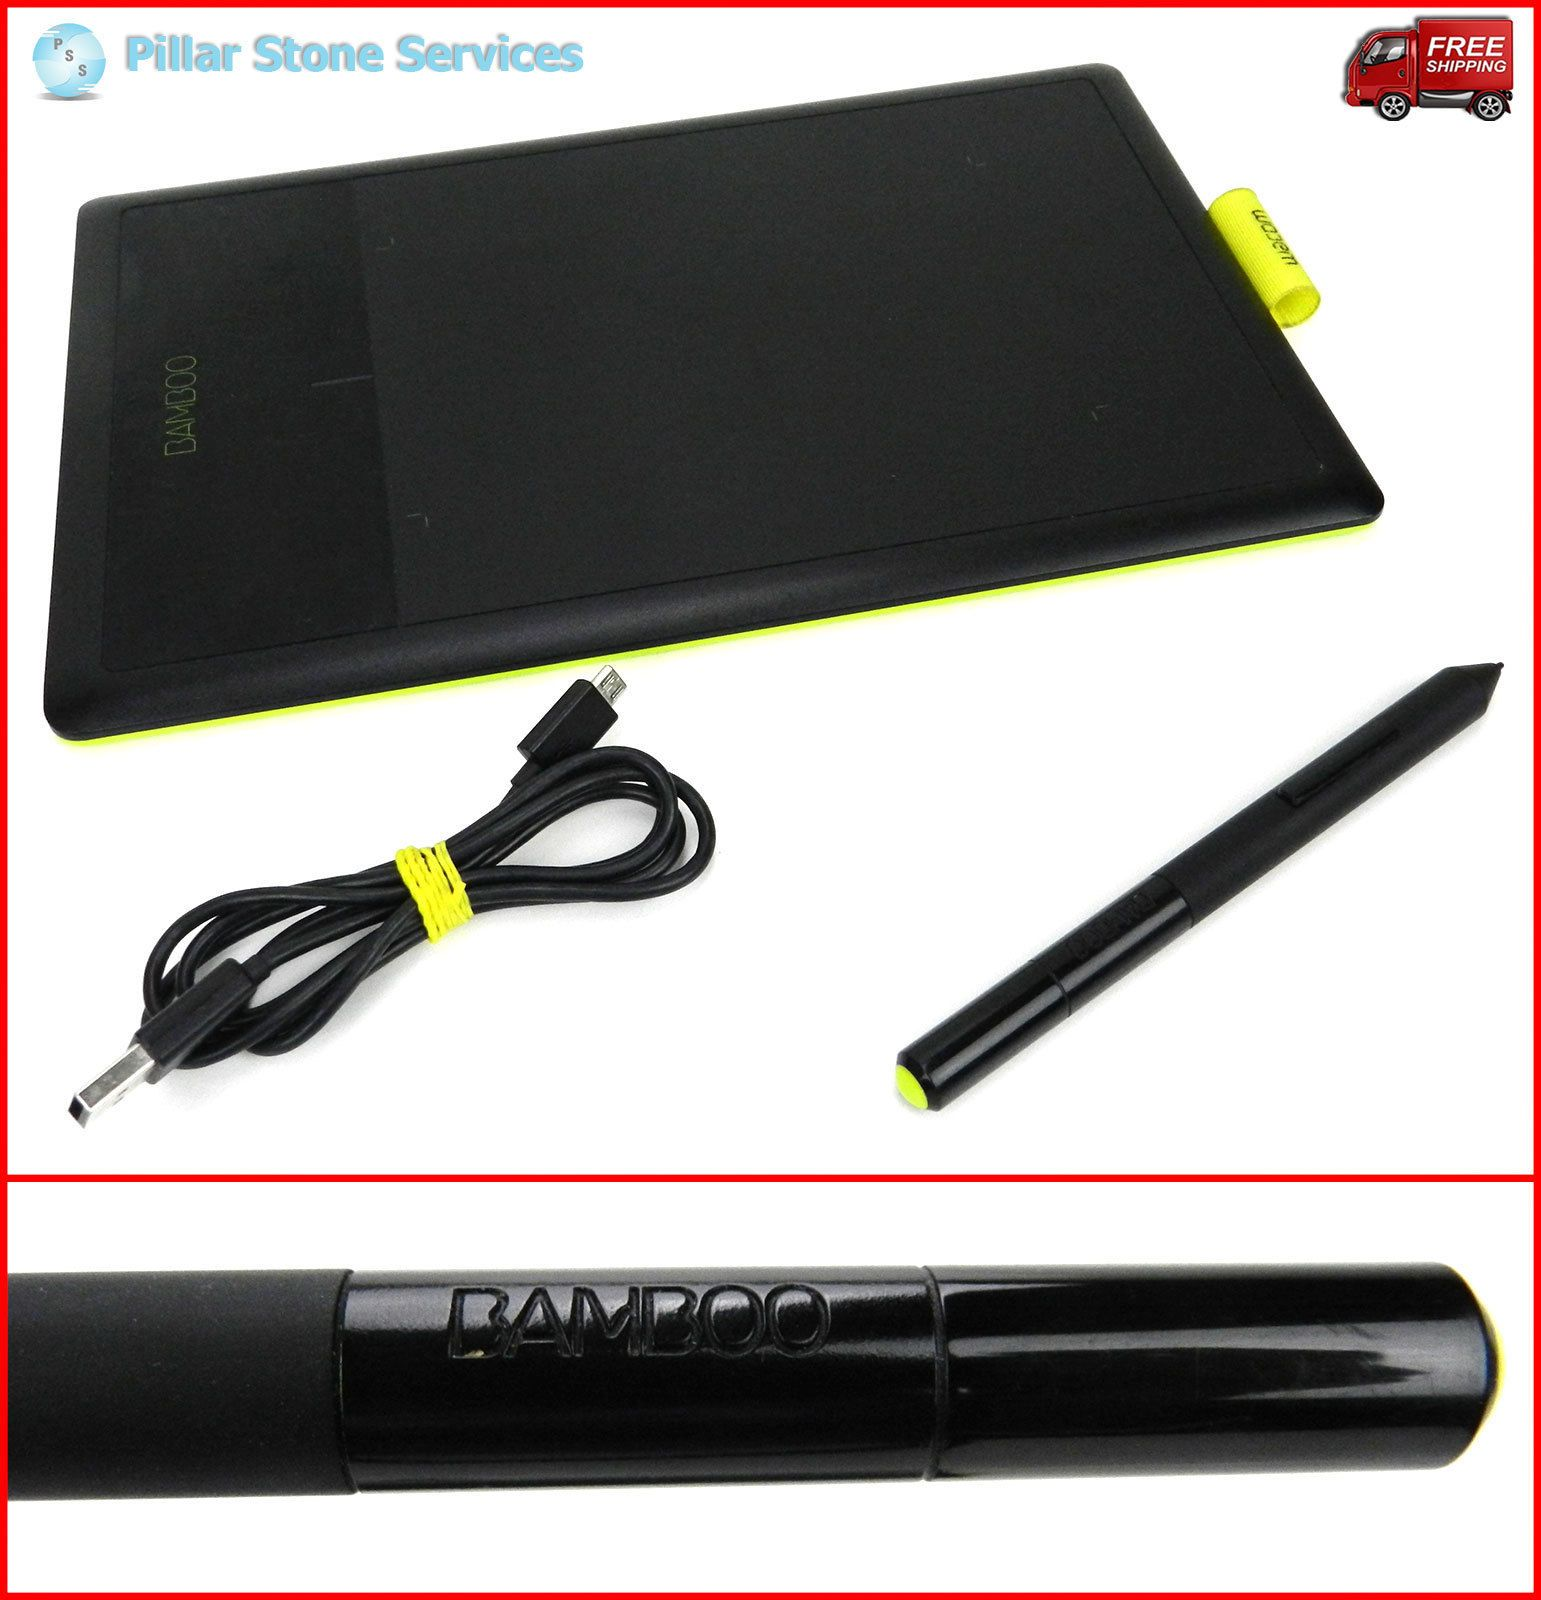 Wacom Bamboo Drawing Tablet Model Ctl 470 Tablet Pen Cable